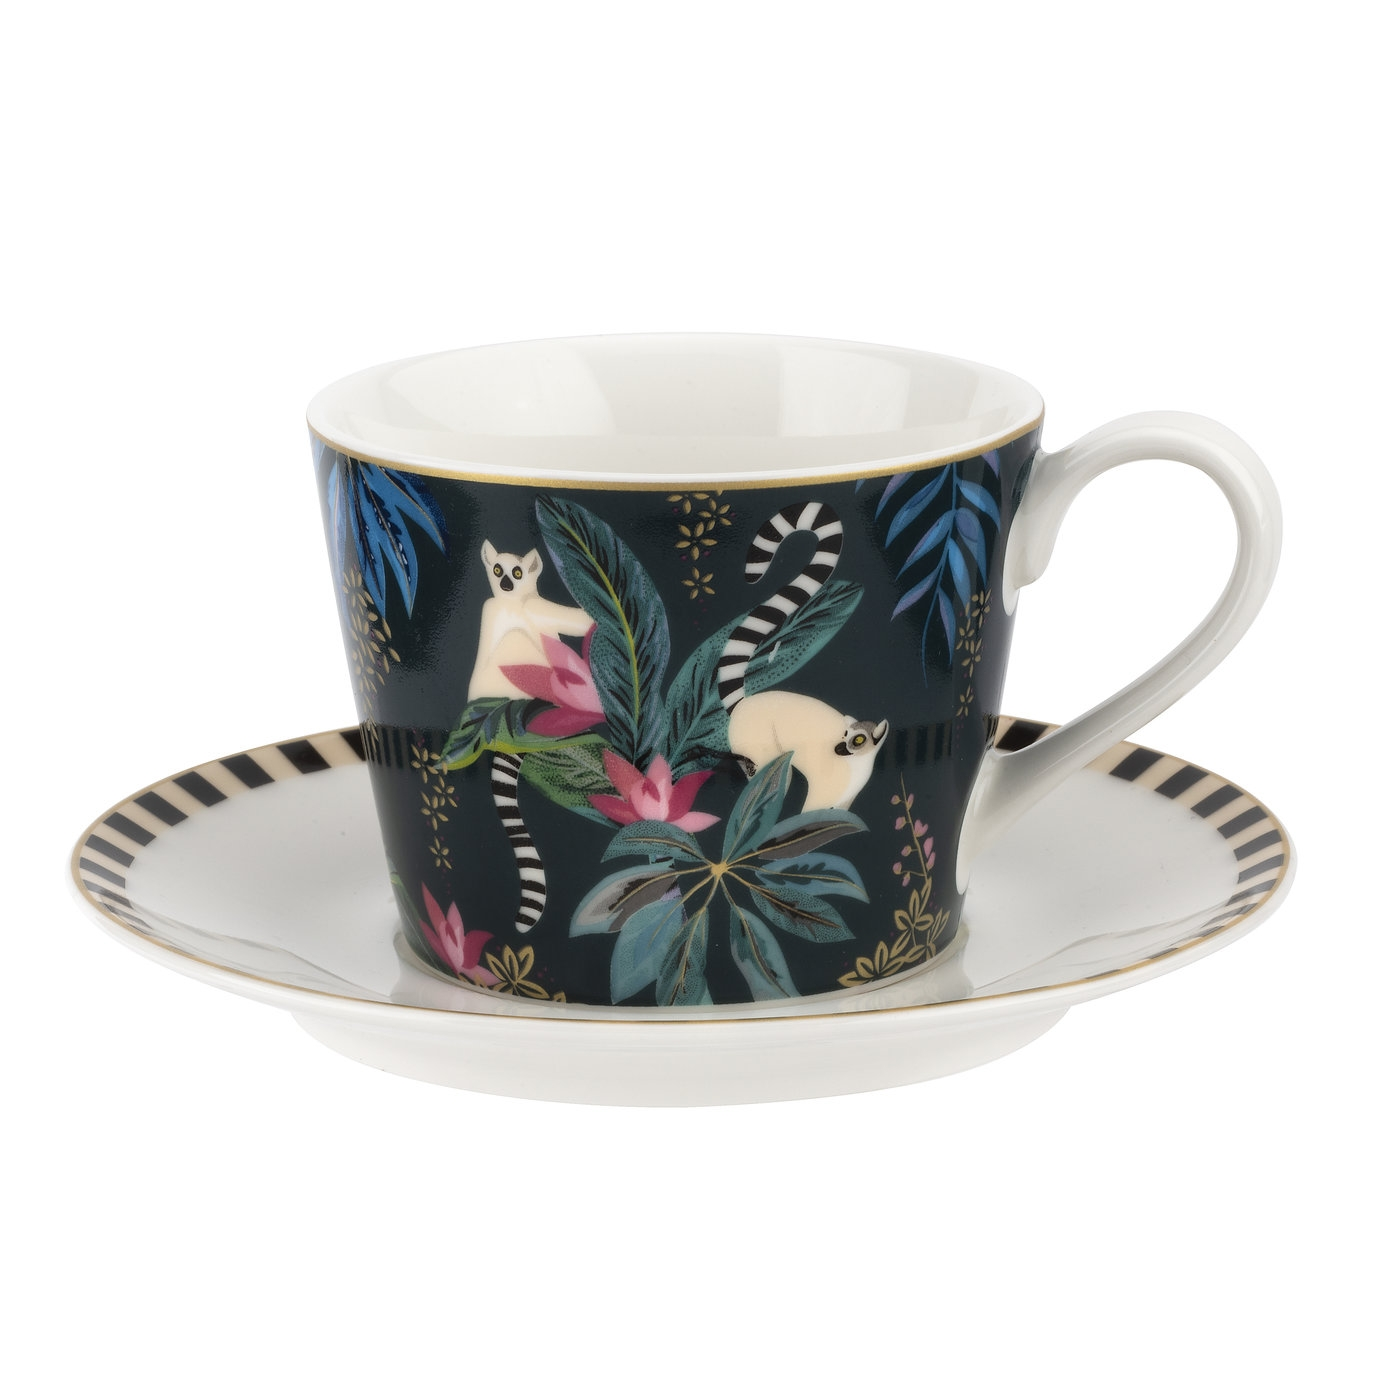 Sara Miller London Tahiti Teacup and Saucer (Lemur) image number 0